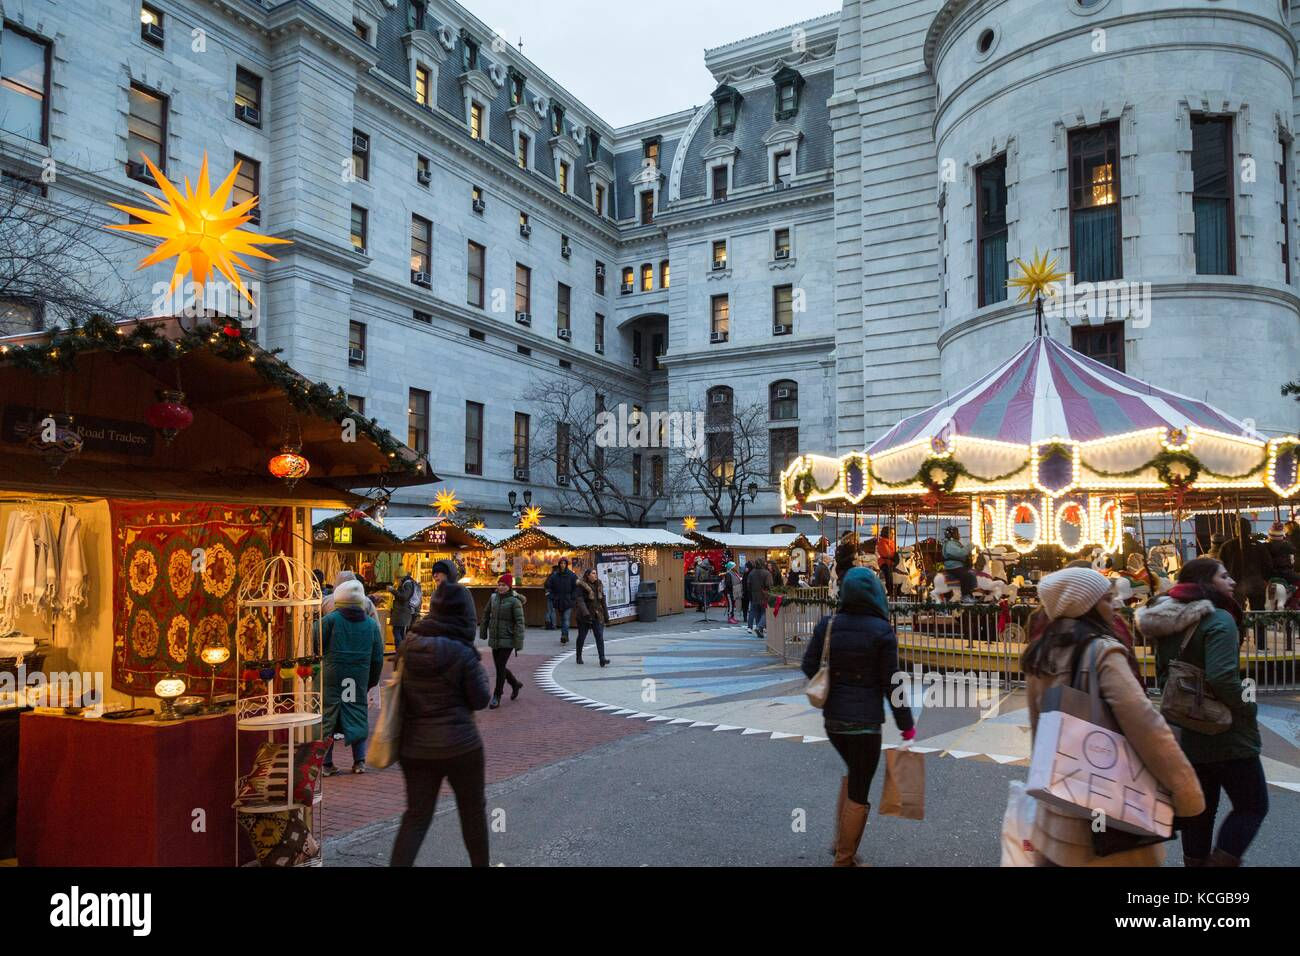 Philadelphia Christmas Market.Christmas Village And Winter Garden At Dilworth Park Outside